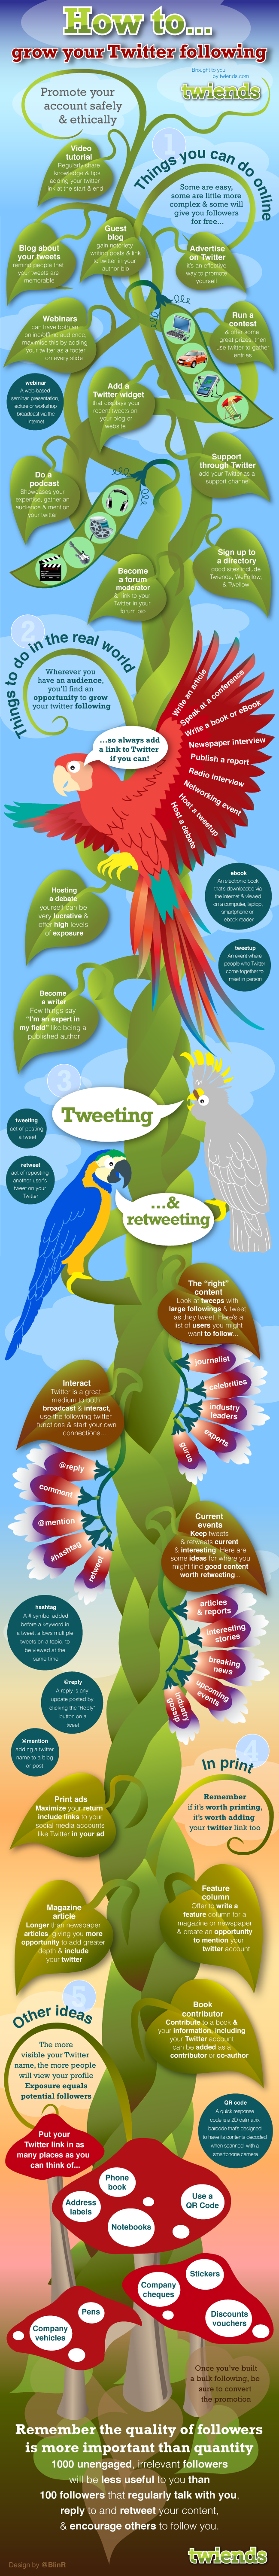 how to grow your twitter following: ethically responsible ways to promote yourself or your website #twitter